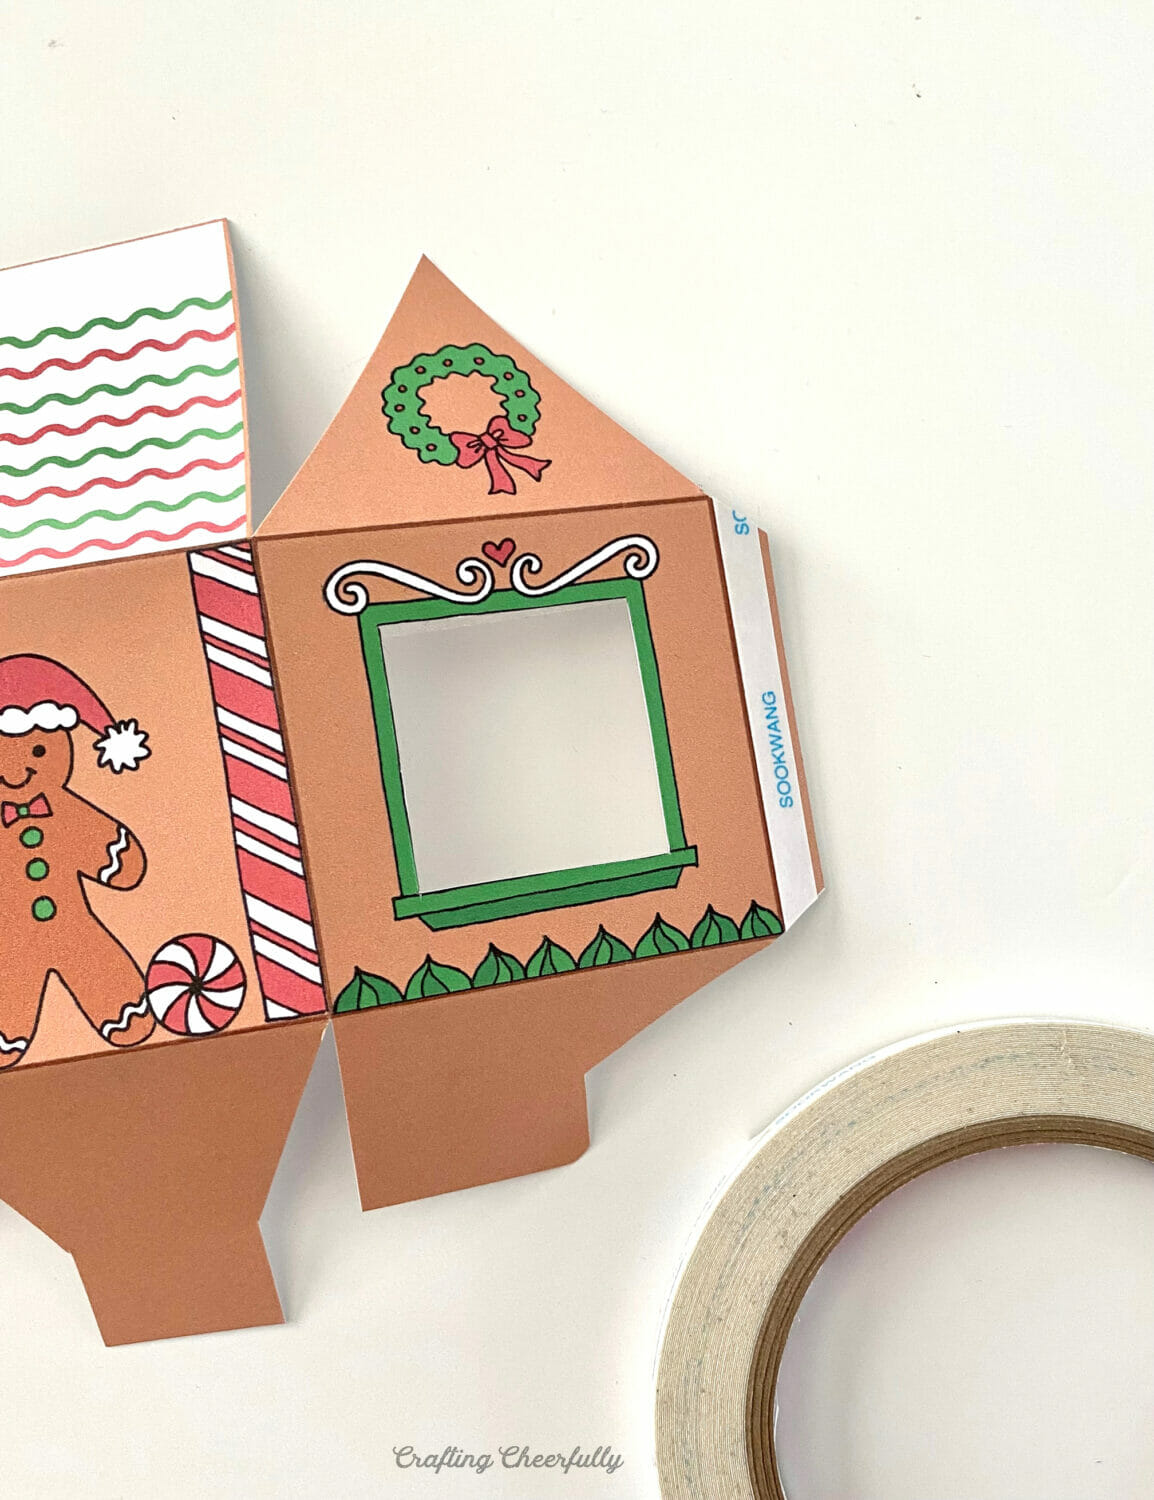 Gingerbread house treat box has double-sided tape applied to it's tab.